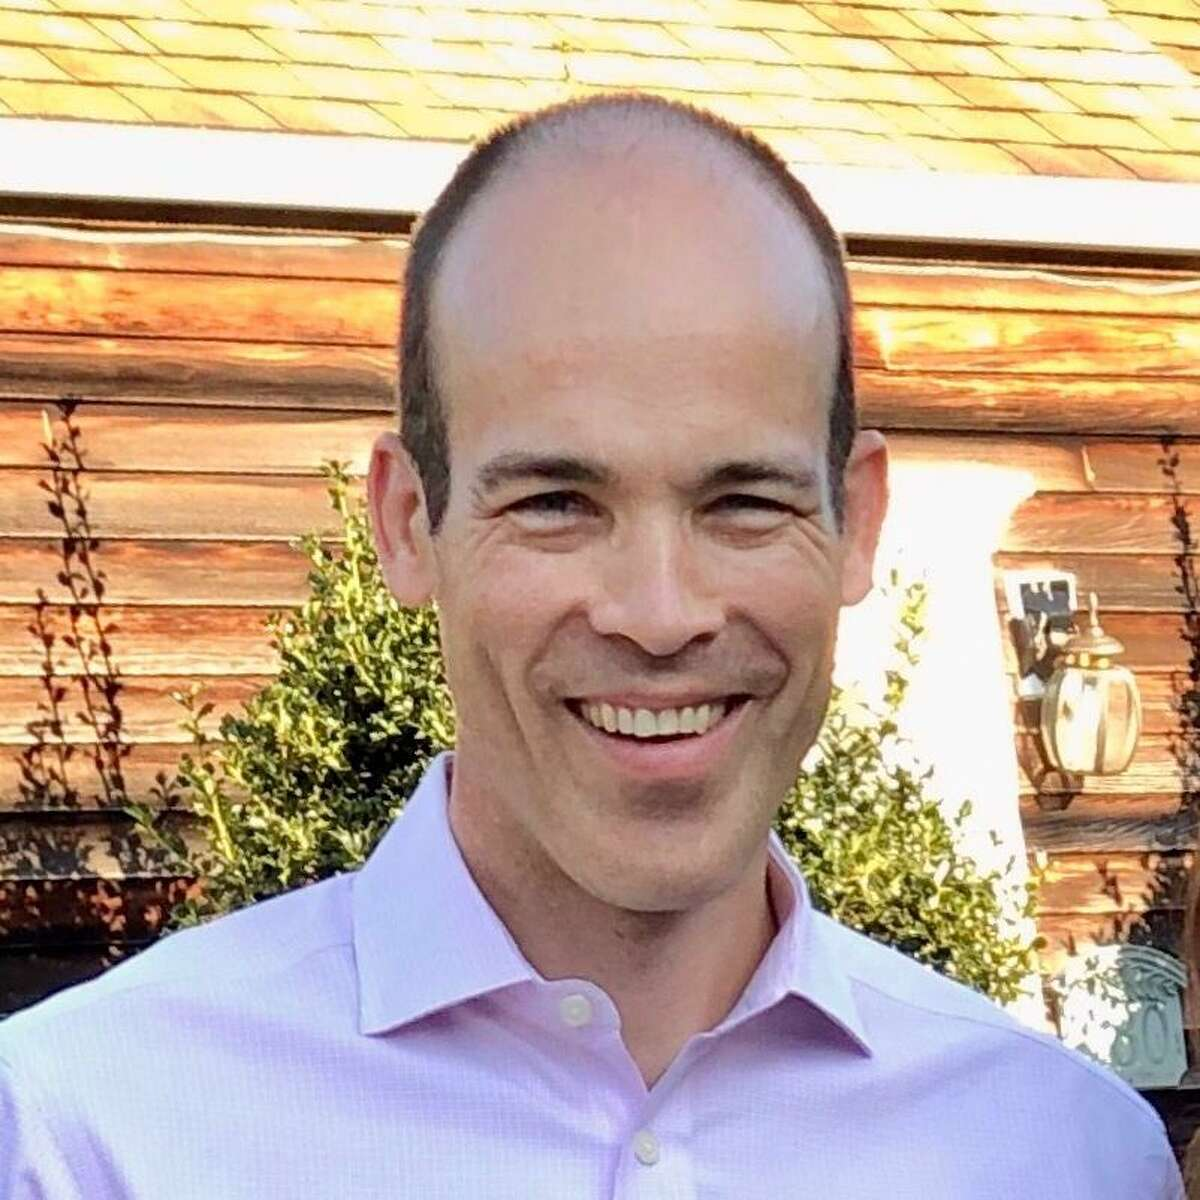 Luke Davis is an associate professor of medicine and of epidemiology at Yale School of Medicine. He also teaches at Yale School of Public Health.